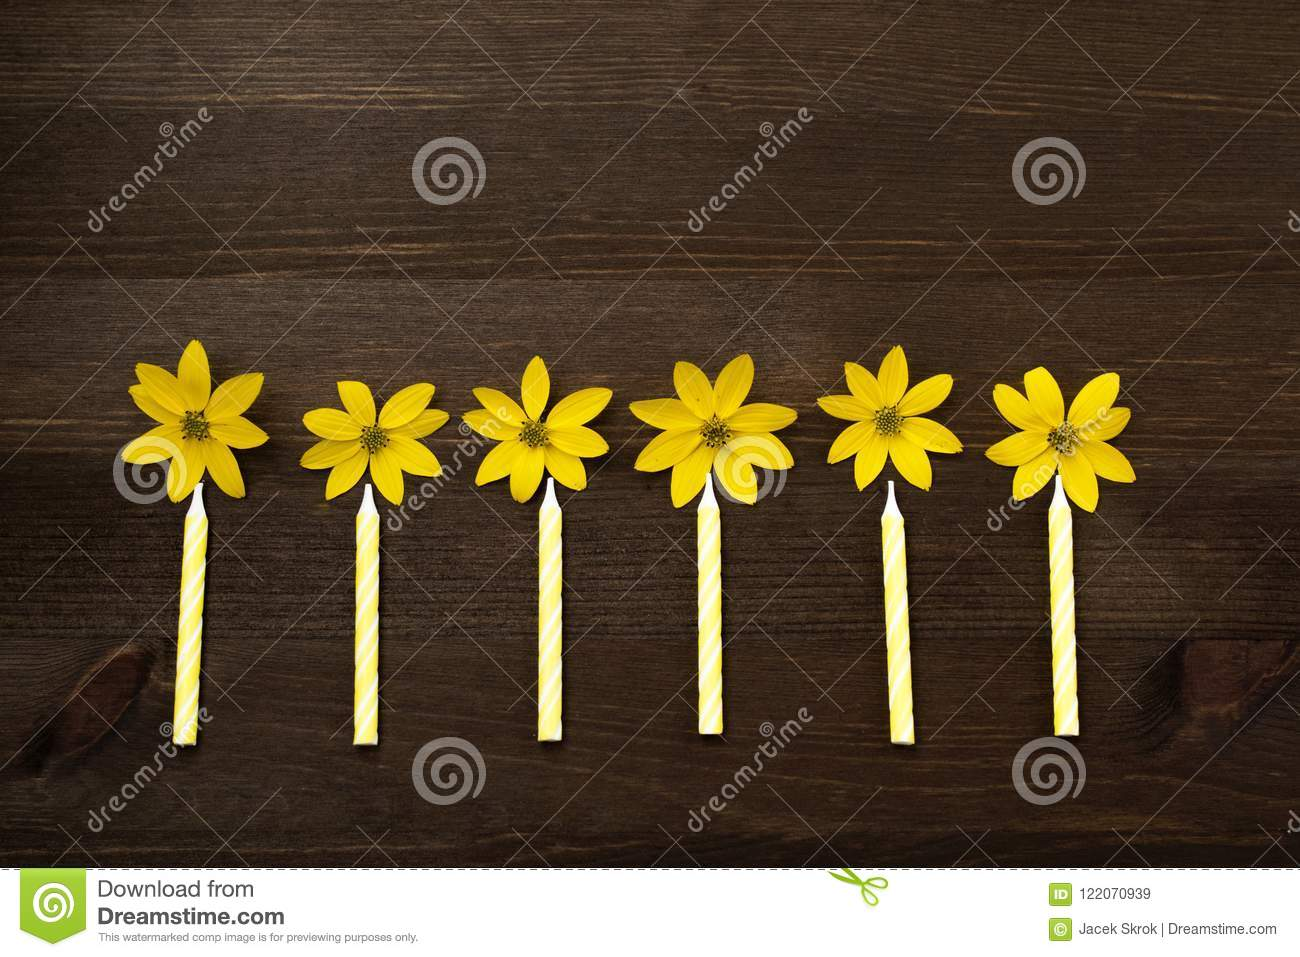 Small Yellow Birthday Candles Arranged In A Row With Flowers Like Flames On Brown Background Top View